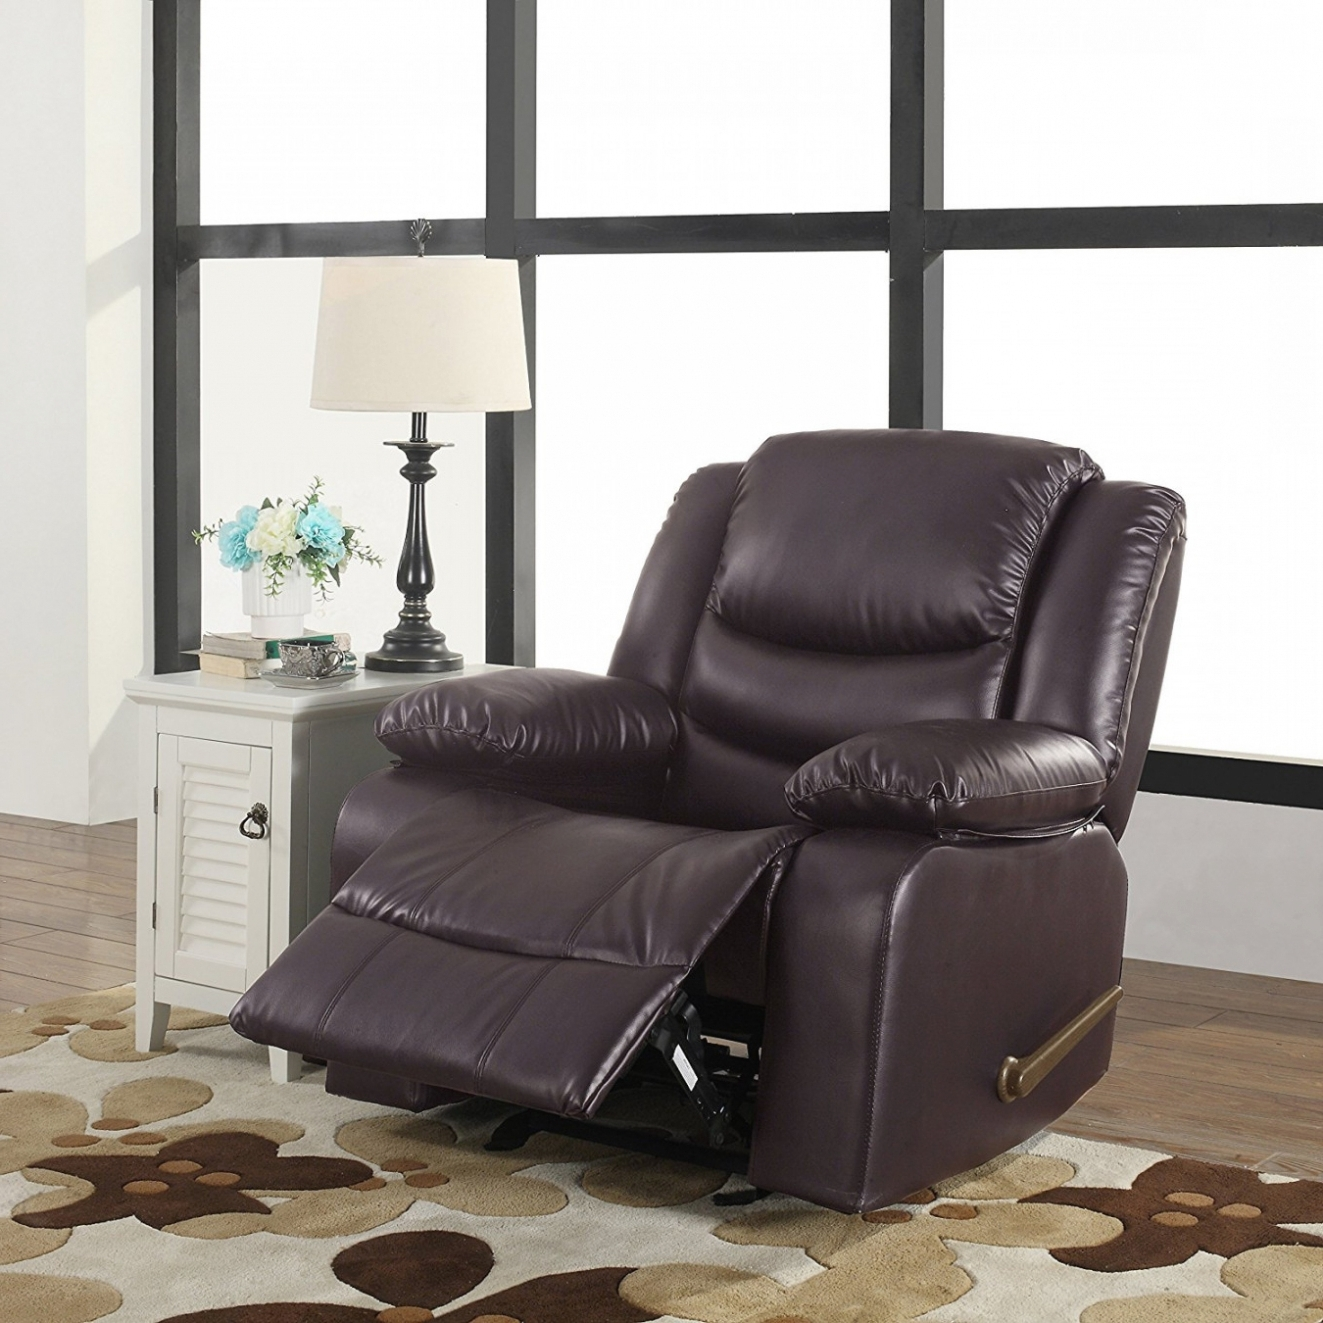 Recent Living Room: Lane Dudley Leather Rocker Recliner Sam S Club With In Rocking Chairs At Sam's Club (View 17 of 20)